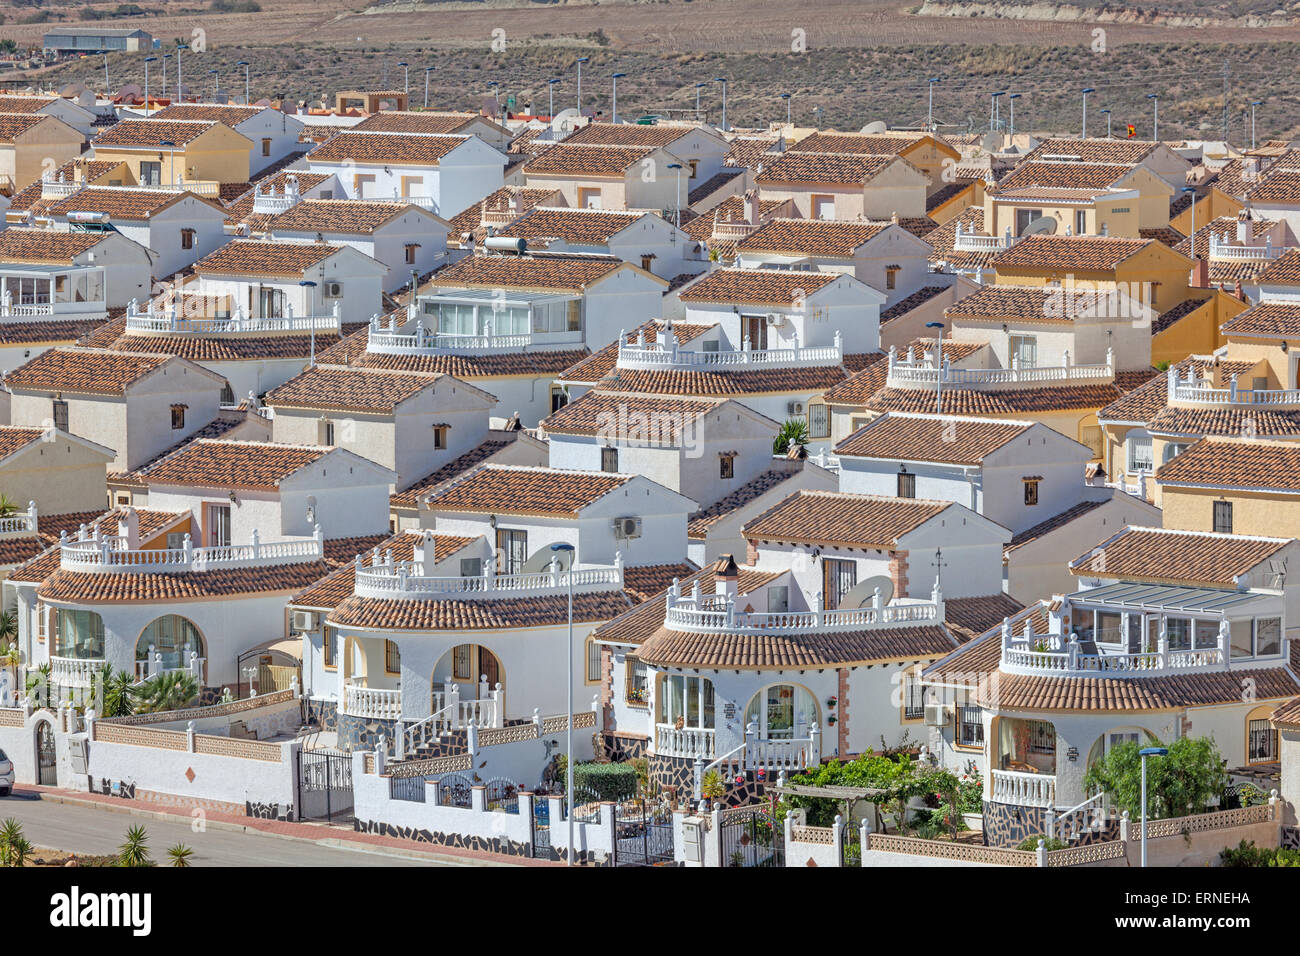 Vacation homes in the urbanisation Camposol, Region Murcia, Spain - Stock Image